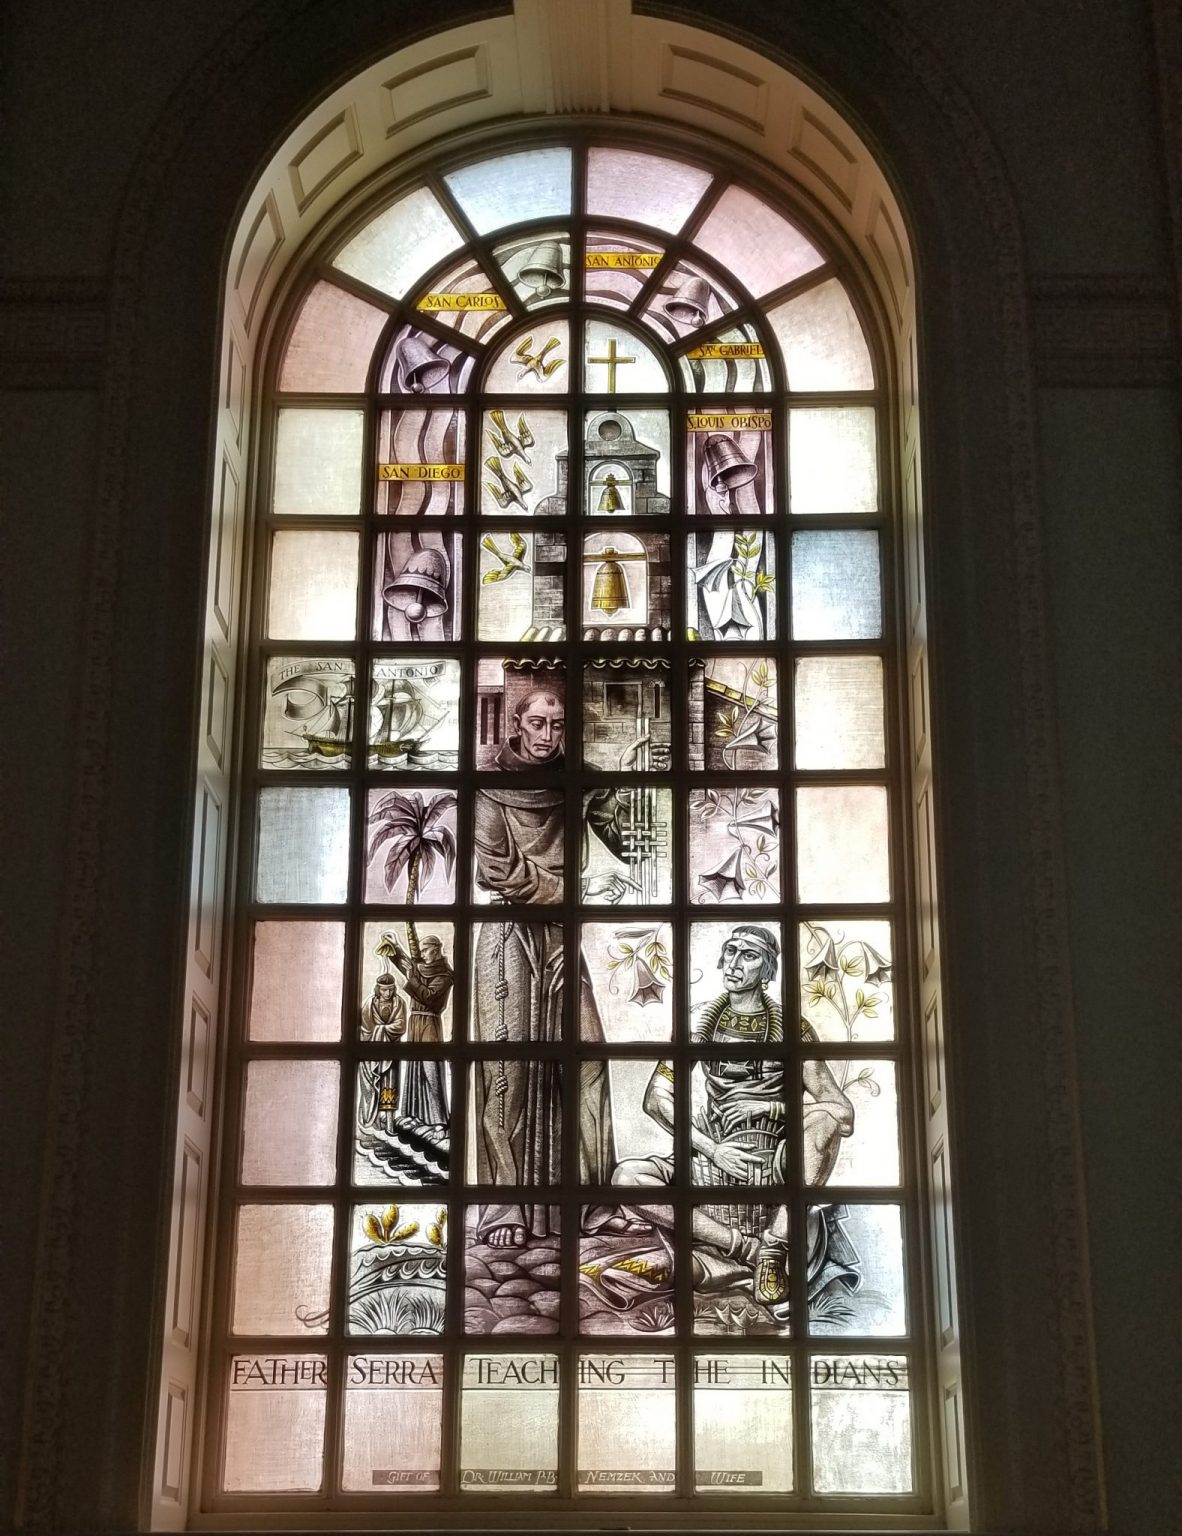 The Father Serra Window